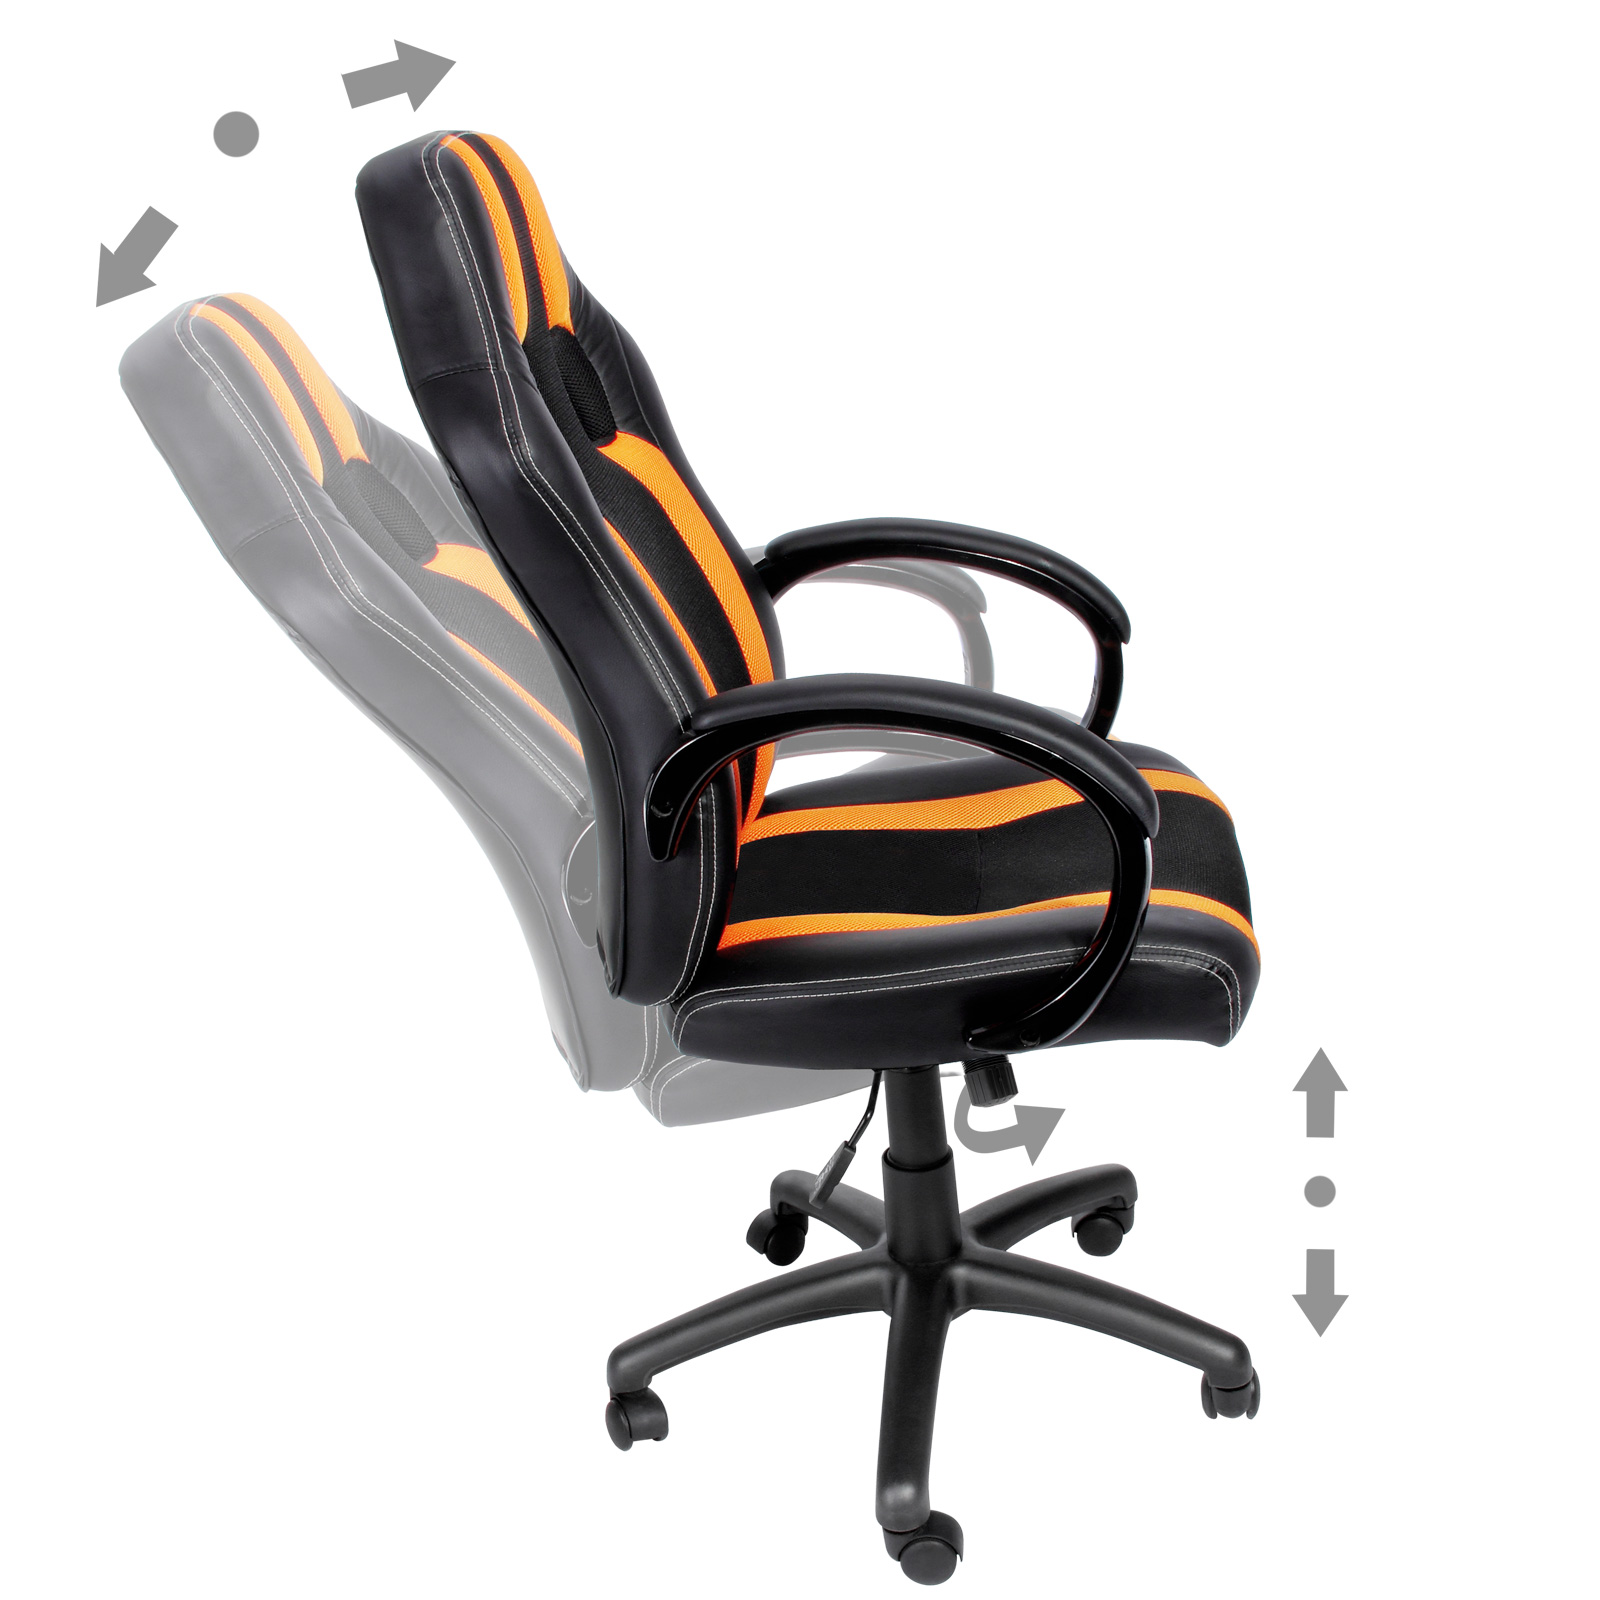 chaise de bureau sport fauteuil siege baquet noire grise orange voiture sport ebay. Black Bedroom Furniture Sets. Home Design Ideas